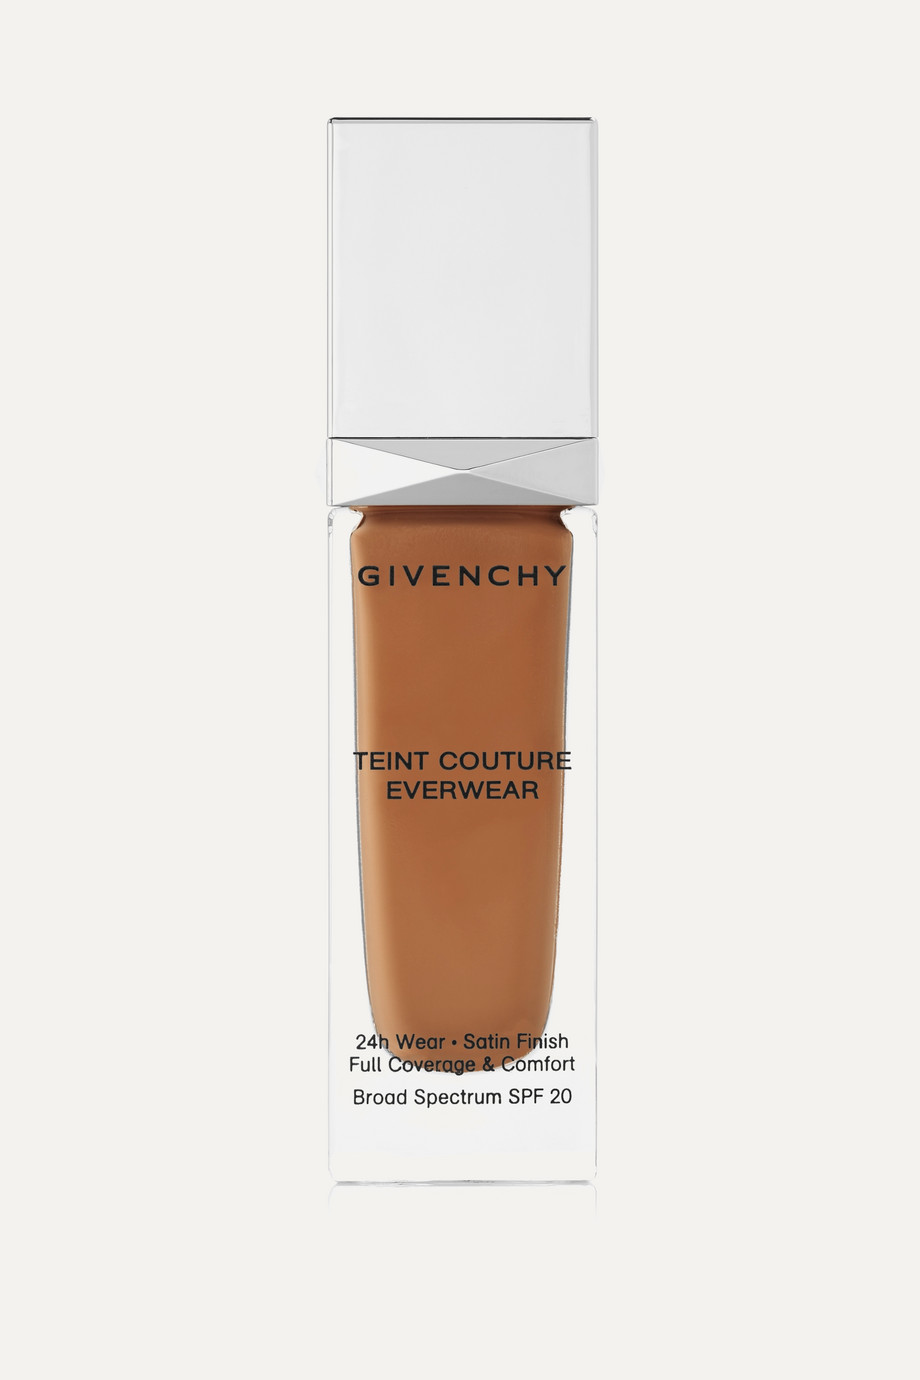 Givenchy Beauty Teint Couture Everwear Foundation SPF20 - P300, 30ml